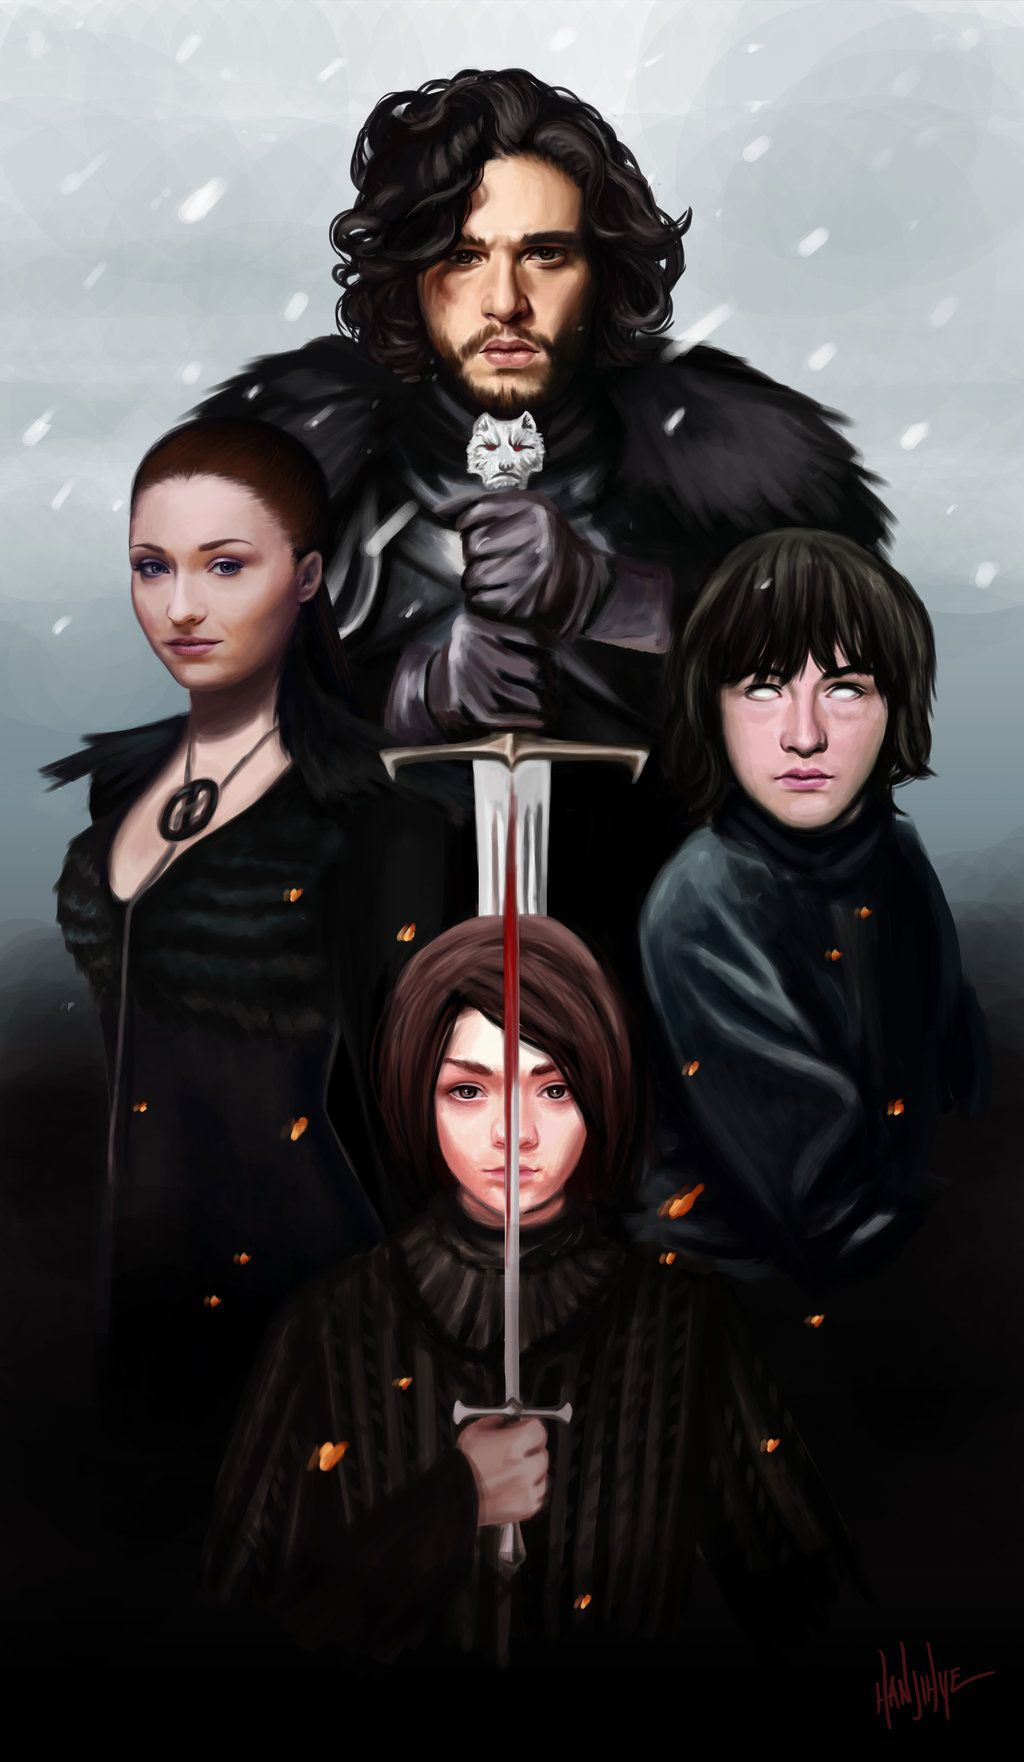 """the north remembers"" by han jihye Very interesting artwork of the remaining Starks... well, besides Rickon."